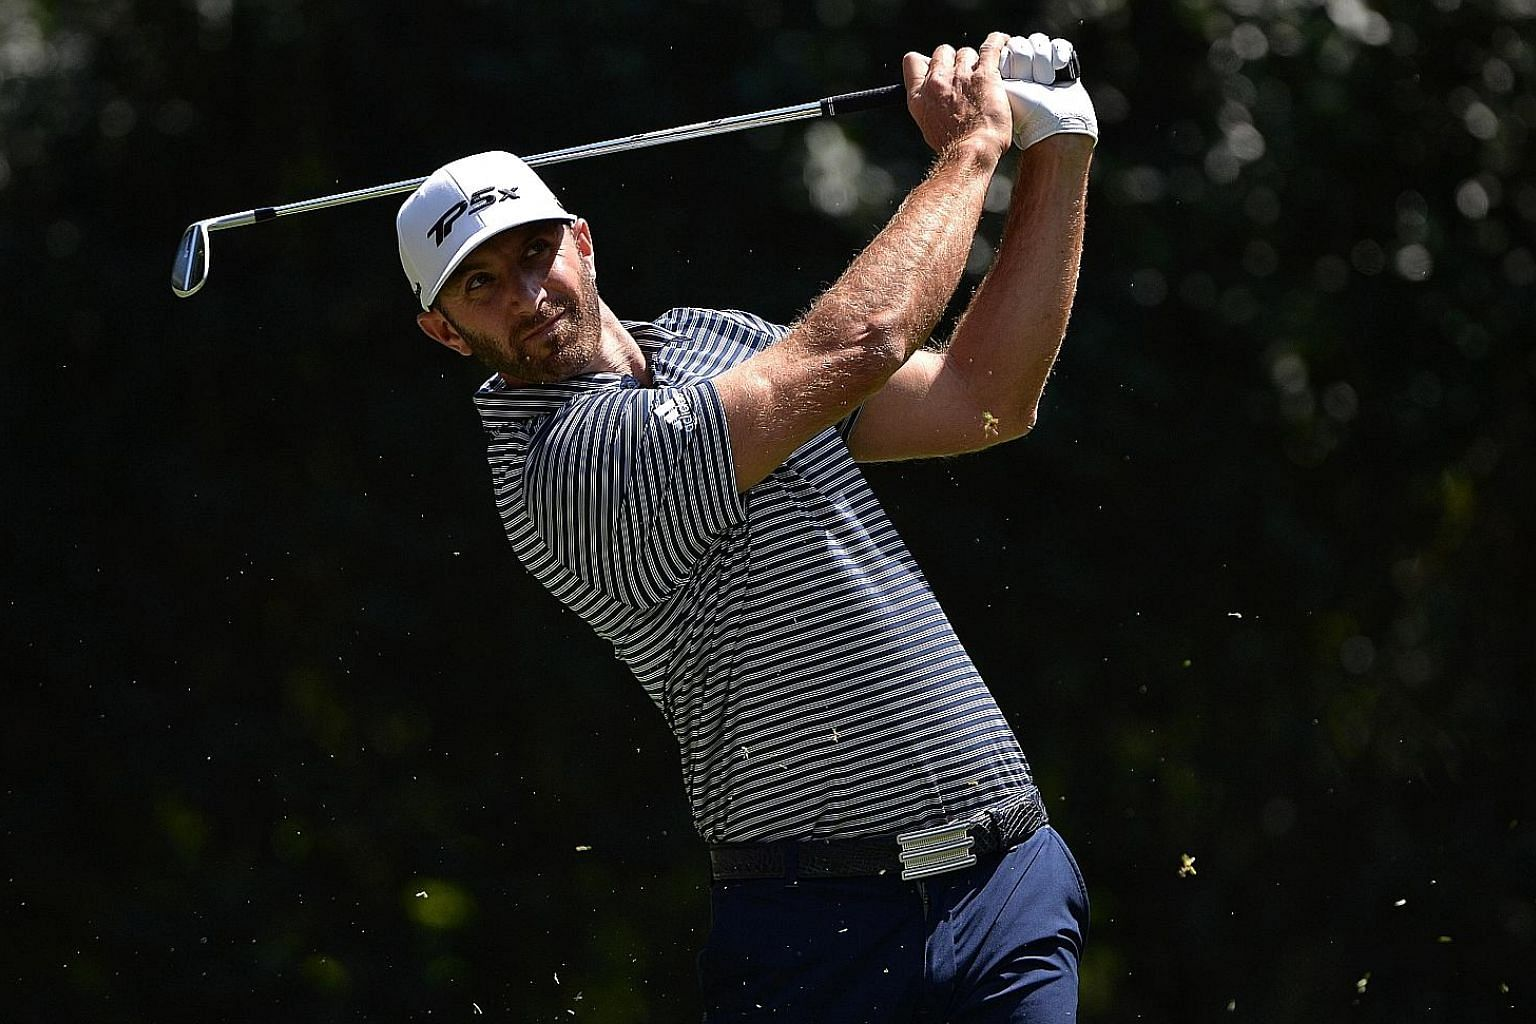 Dustin Johnson's impeccable driving and putting were key to his five-stroke victory over Rory McIlroy at the WGC-Mexico Championship.